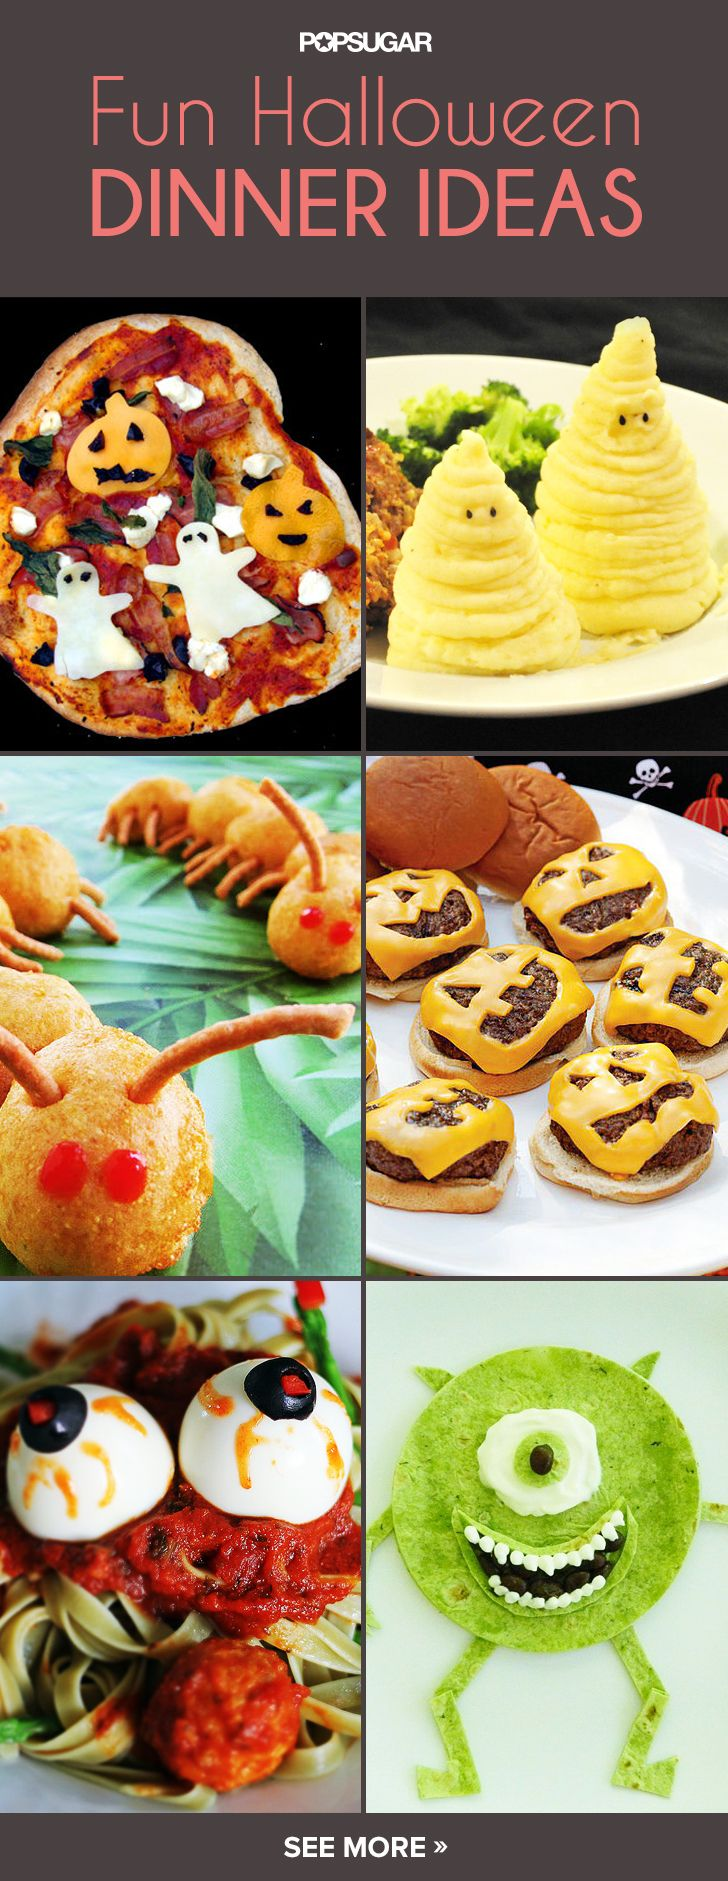 Spooktacular Eats: 12 Fun Halloween Dinner Ideas